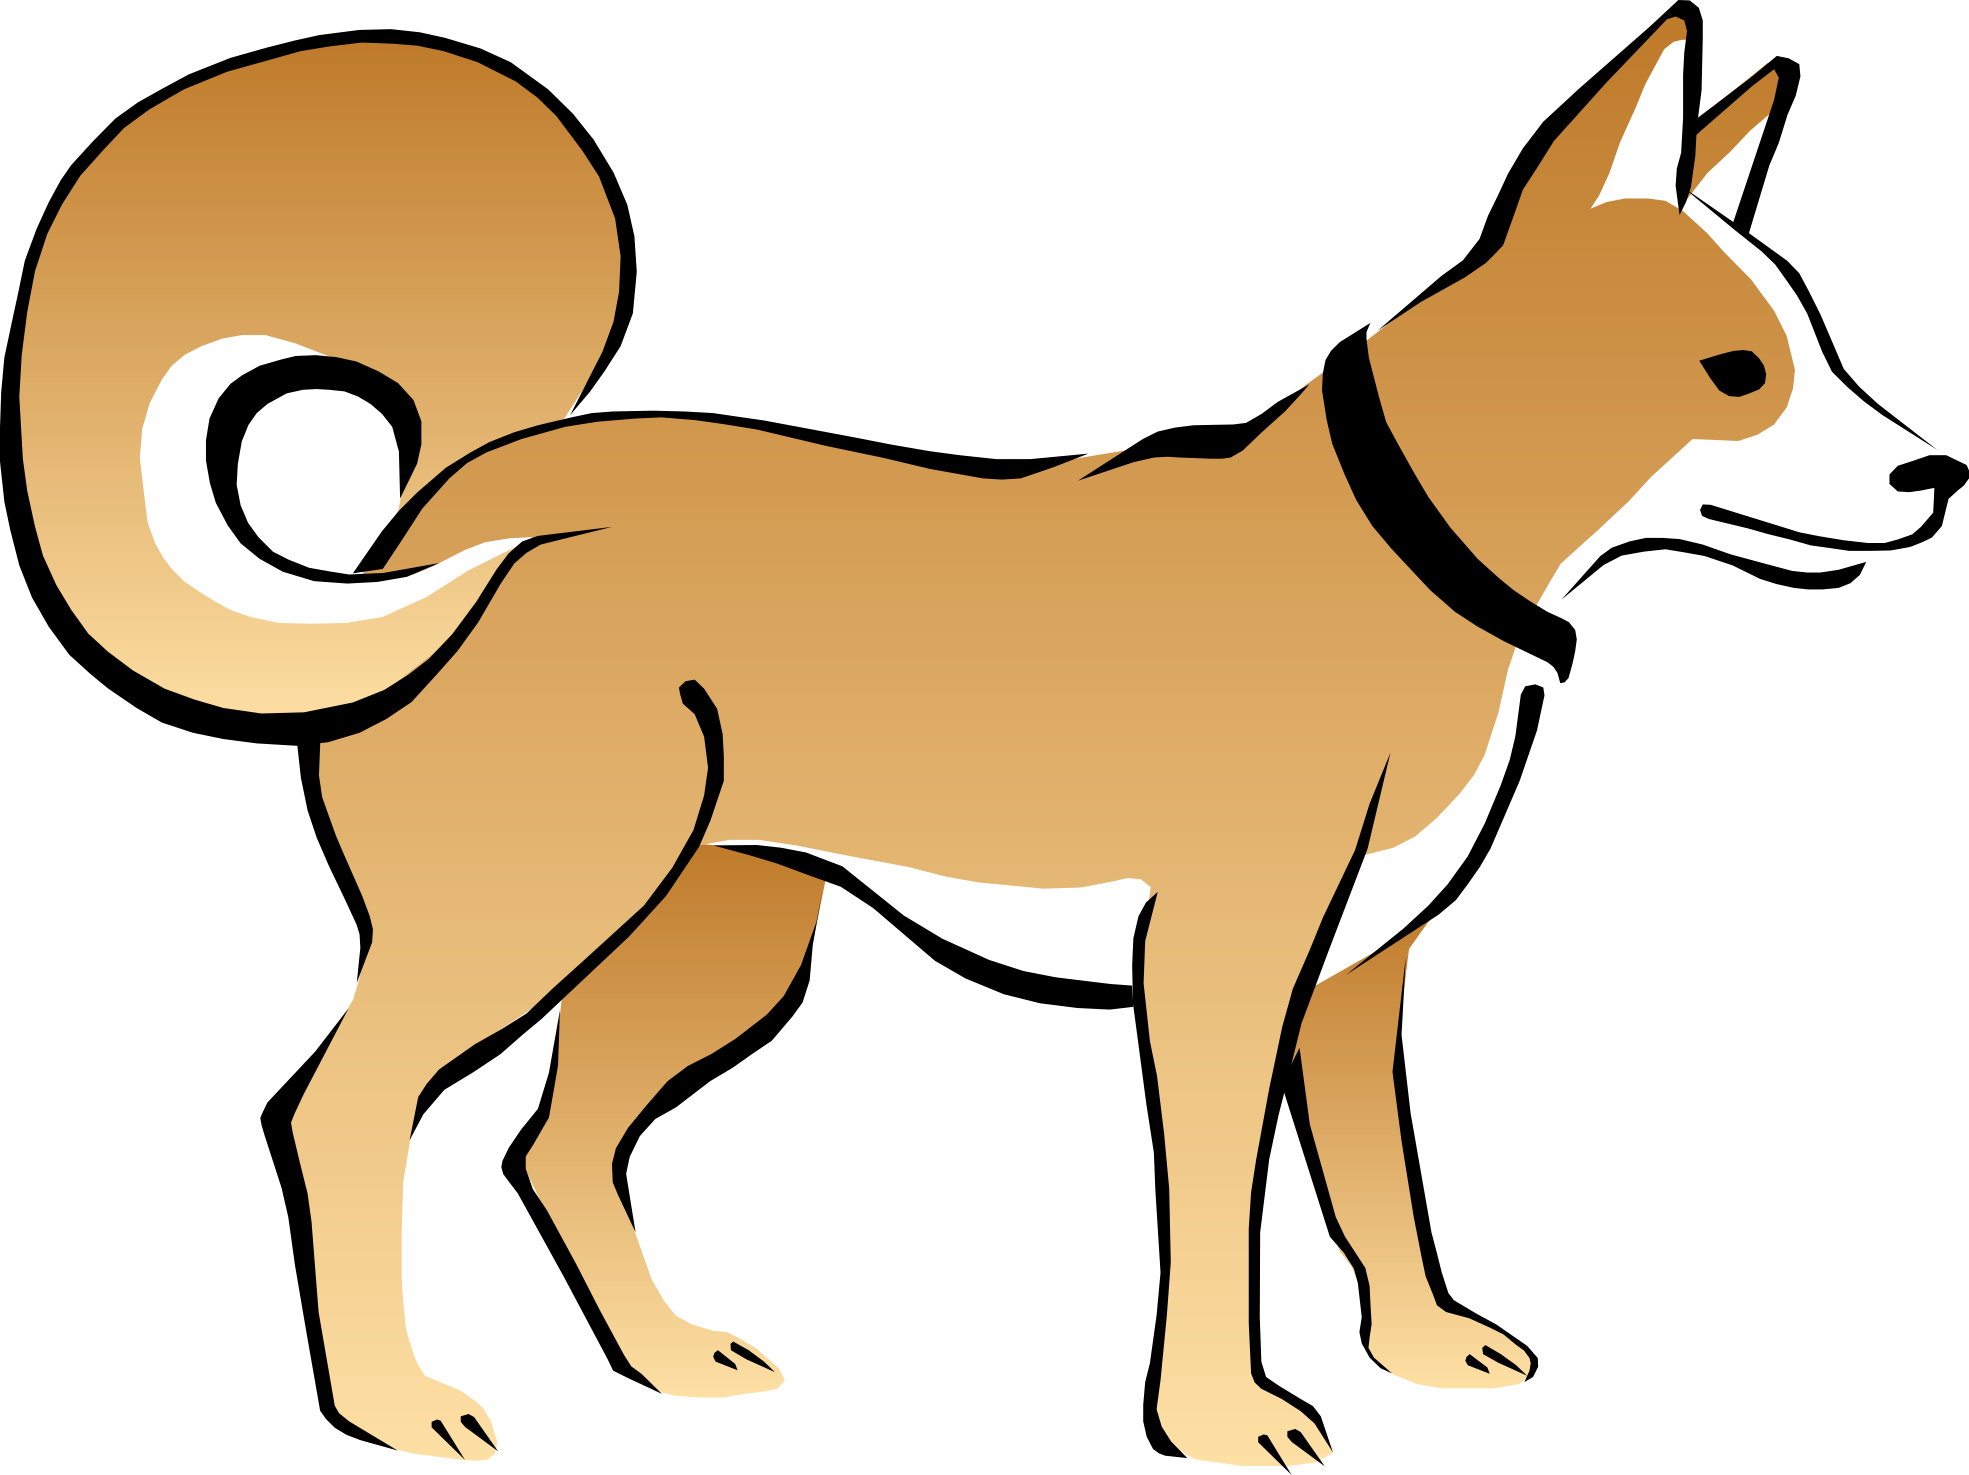 Dog pooping clipart transparent Dog · ClipartHot transparent